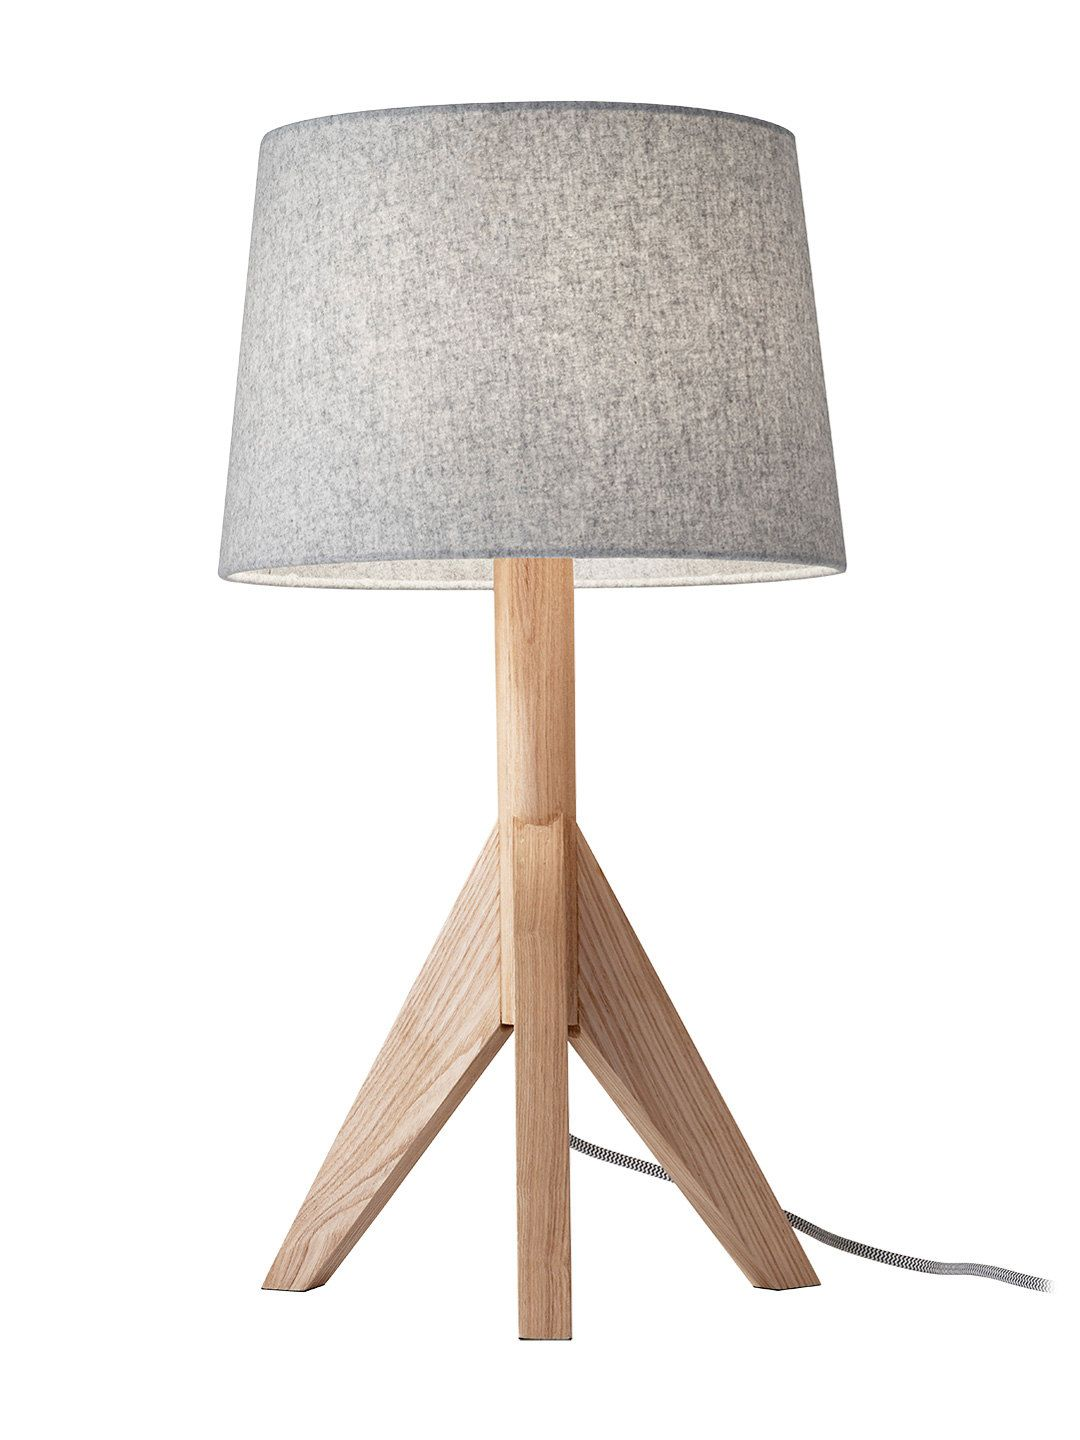 Eden table lamp electrical outlets tripod and bulbs eden table lamp by adesso at gilt aloadofball Images